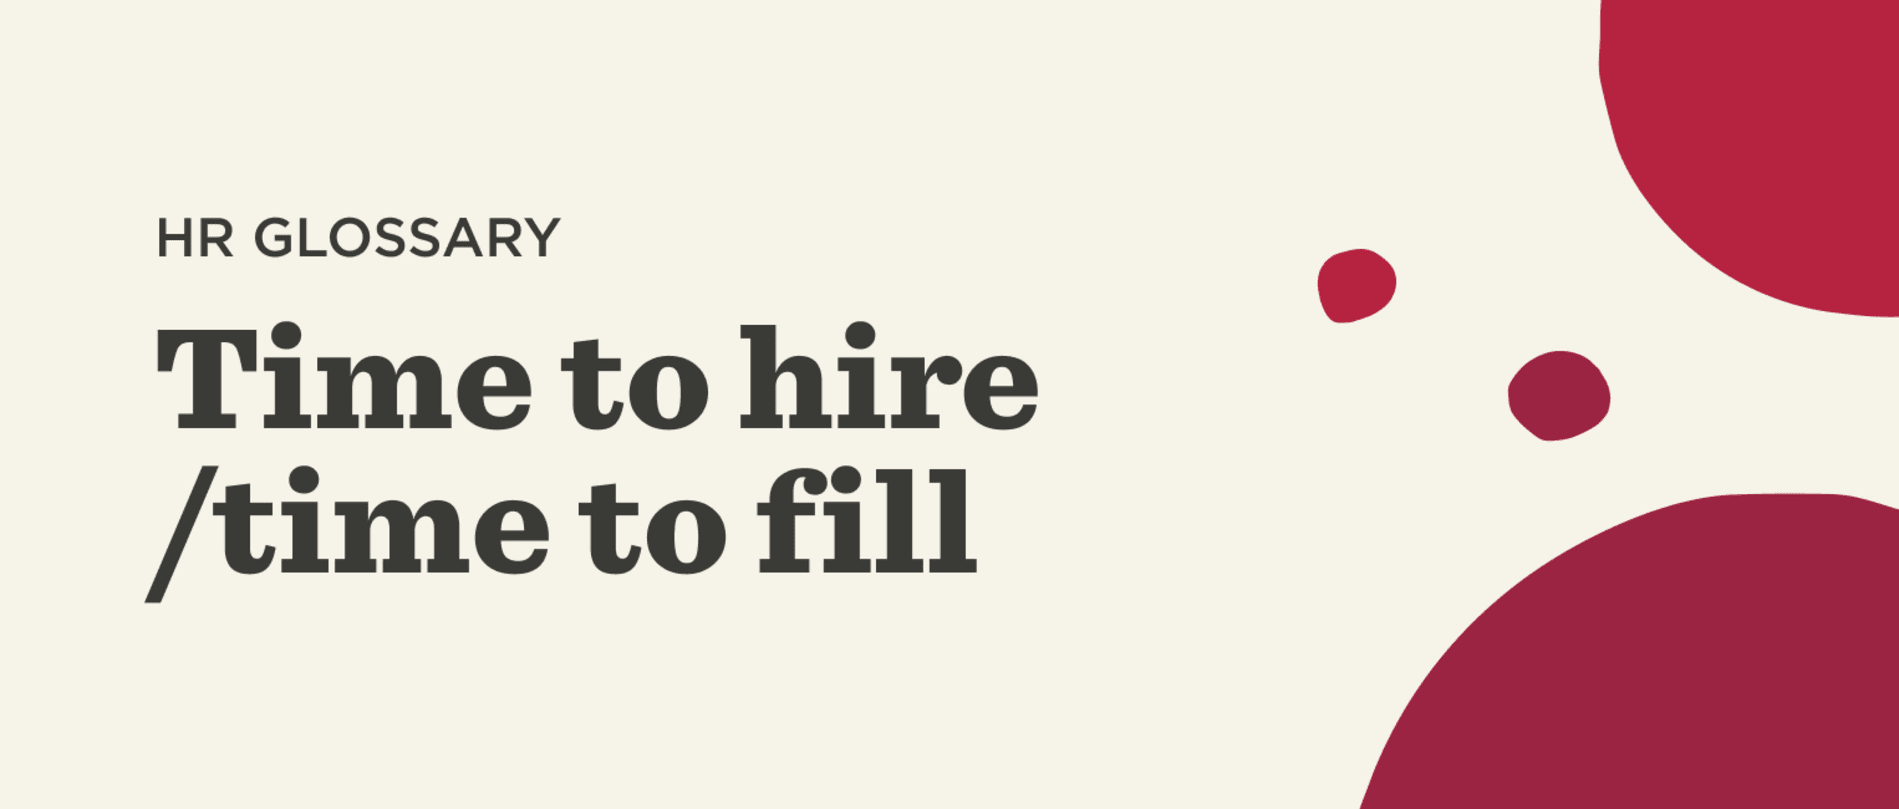 Time to hire-time to fill